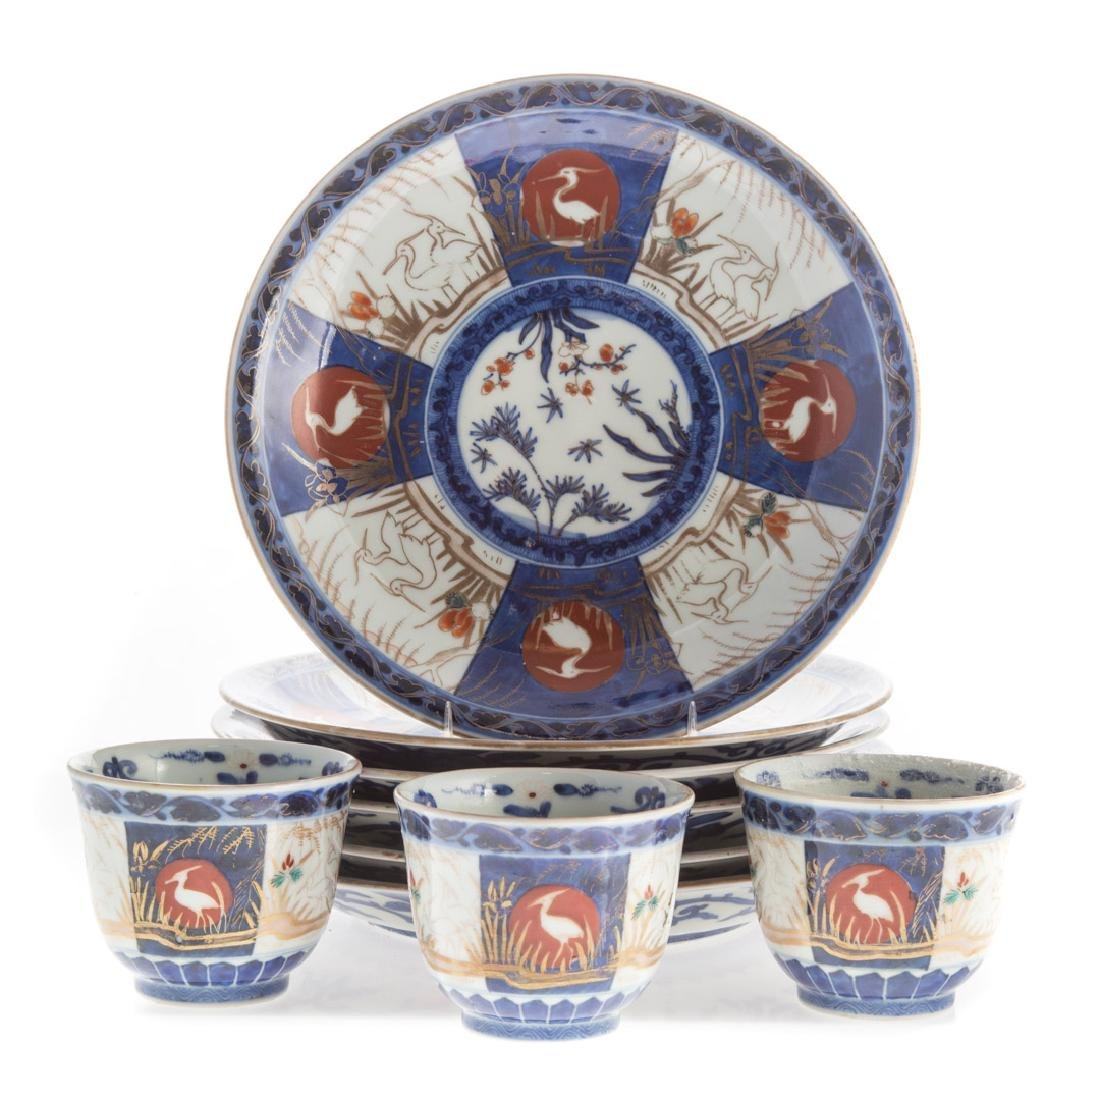 Nine Japanese Imari porcelain plates and cups